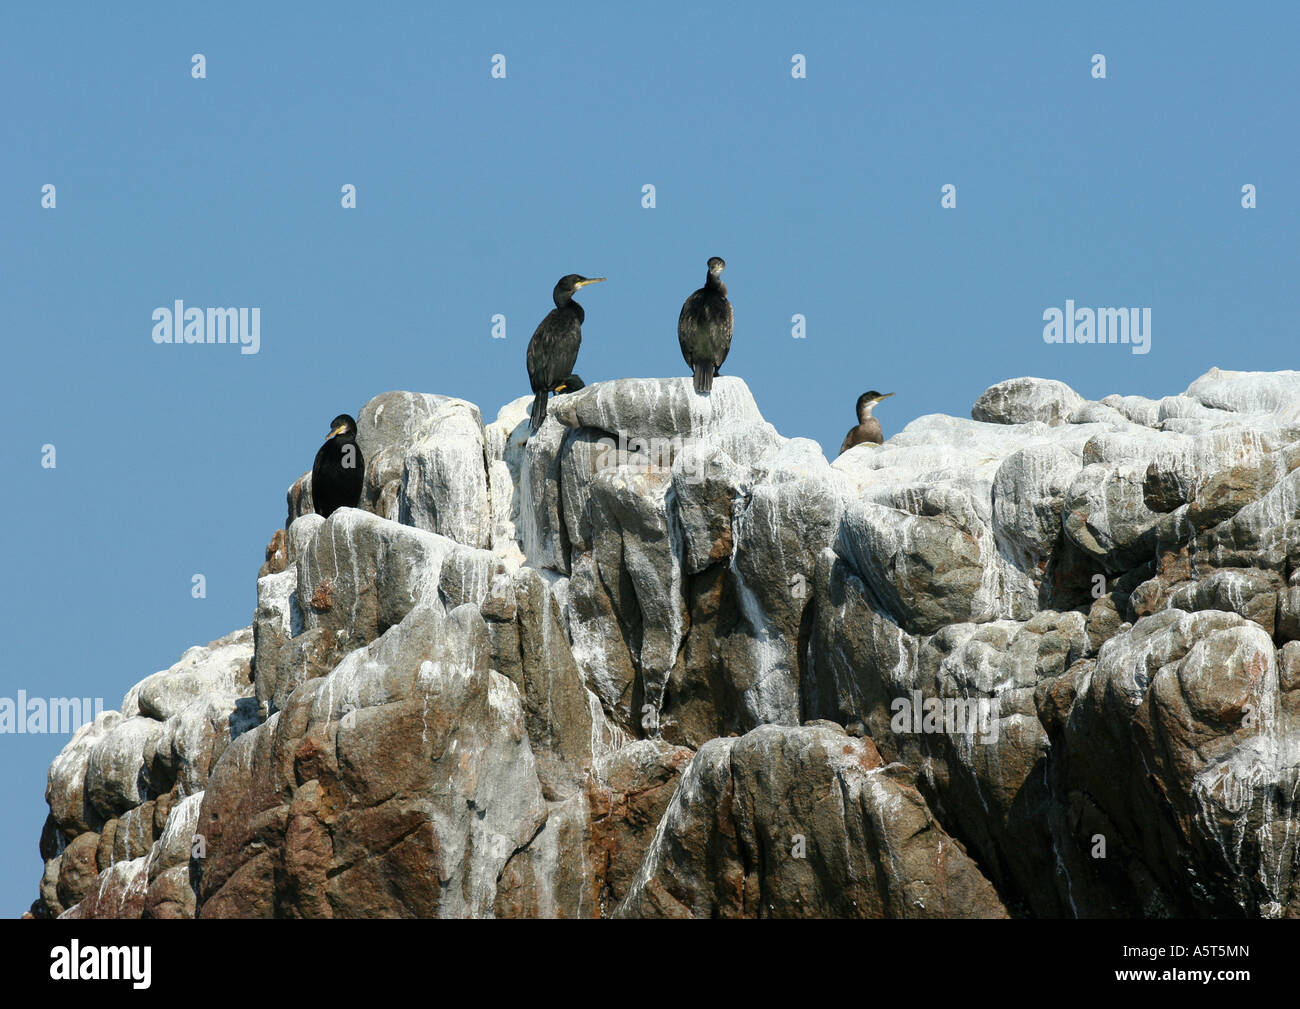 Ile de Brehat, Brittany, France, Common shags (Phalacrocorax aristotelis), cormorants, perched on rock - Stock Image